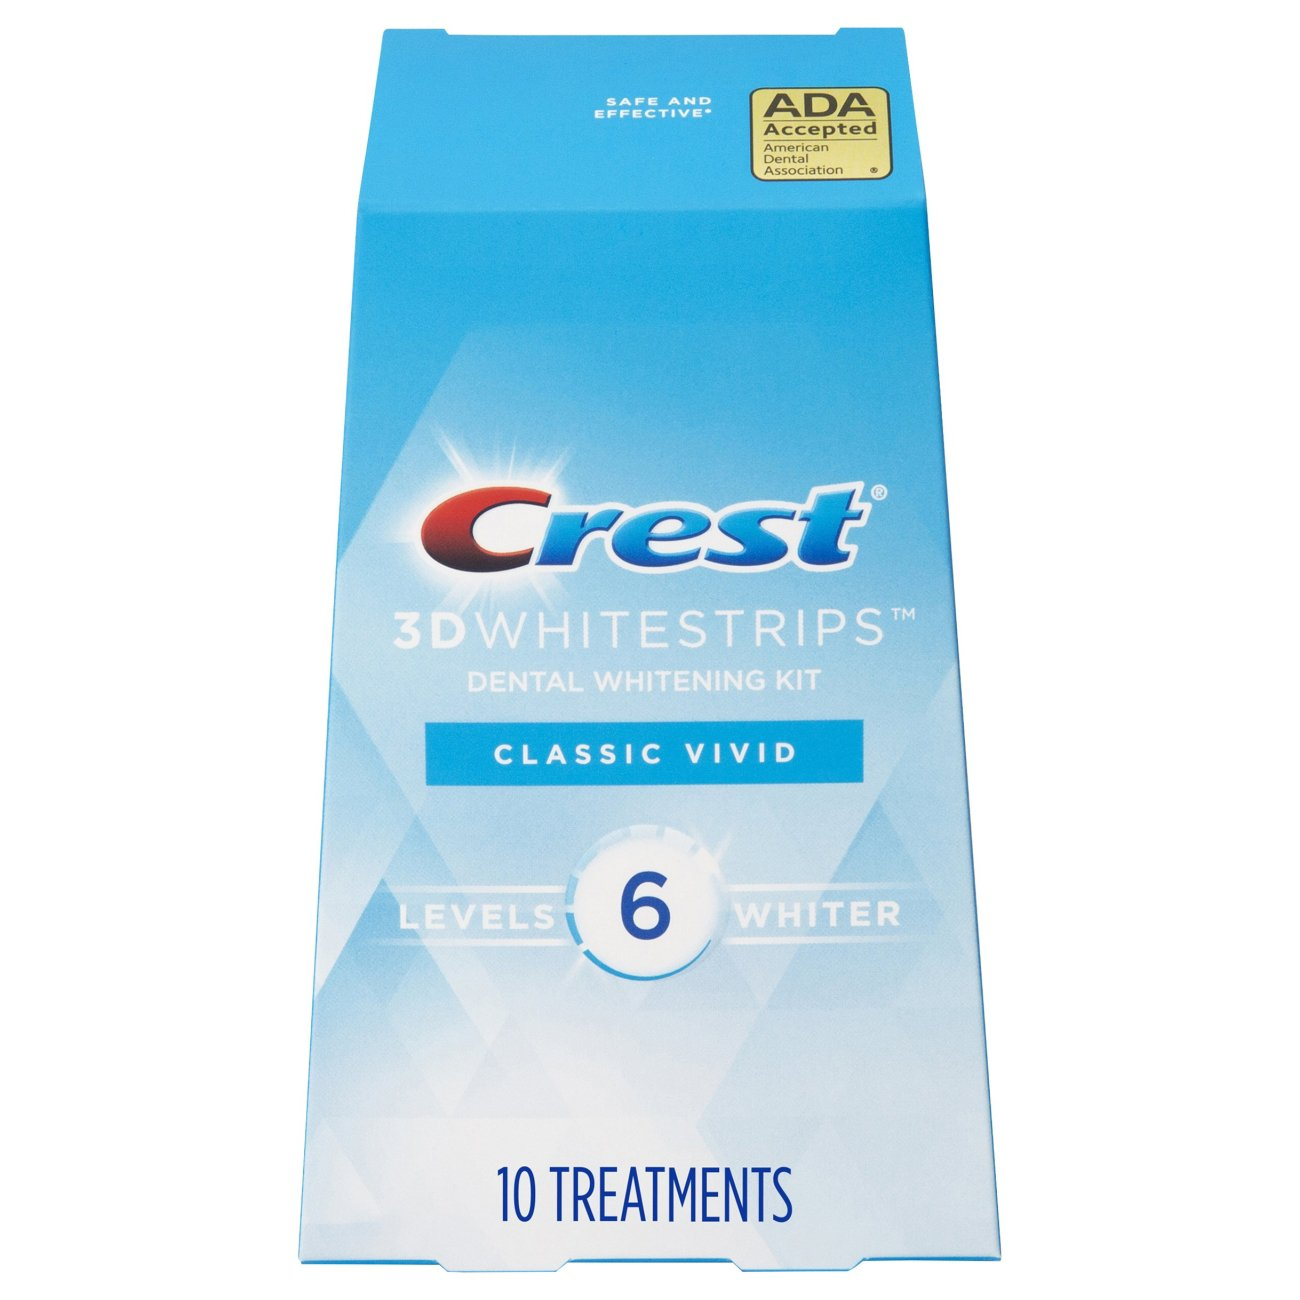 Crest 3d Whitestrips Classic Vivid Teeth Whitening Kit Shop